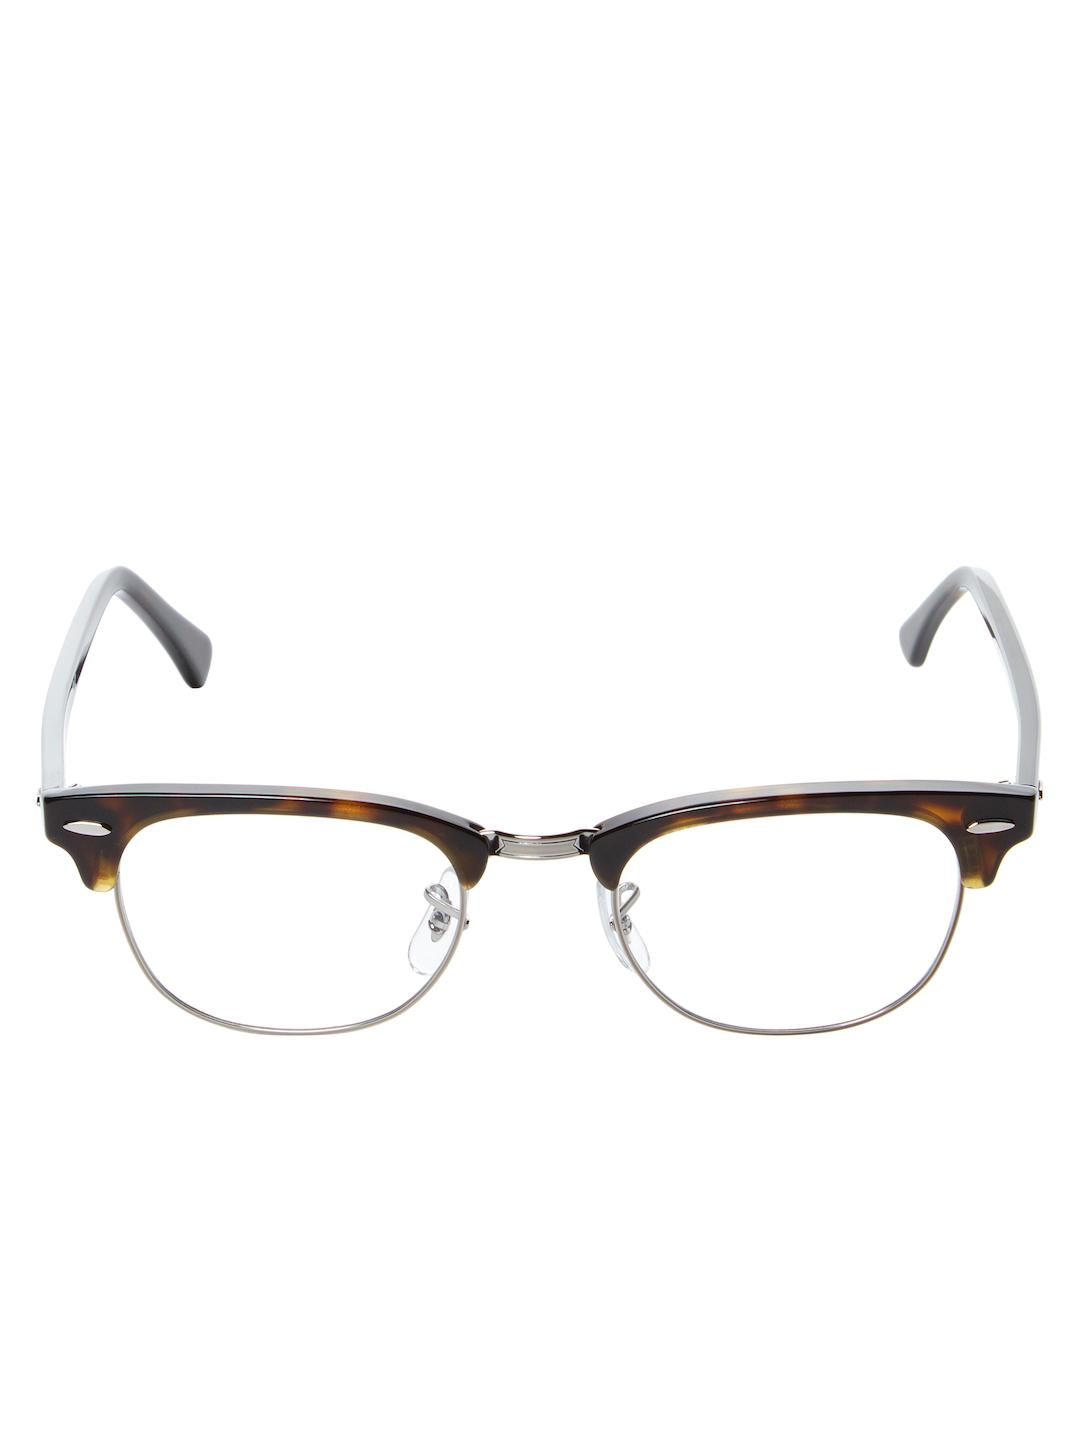 55e440d91b Ray Ban Optical Frames Clubmaster « One More Soul